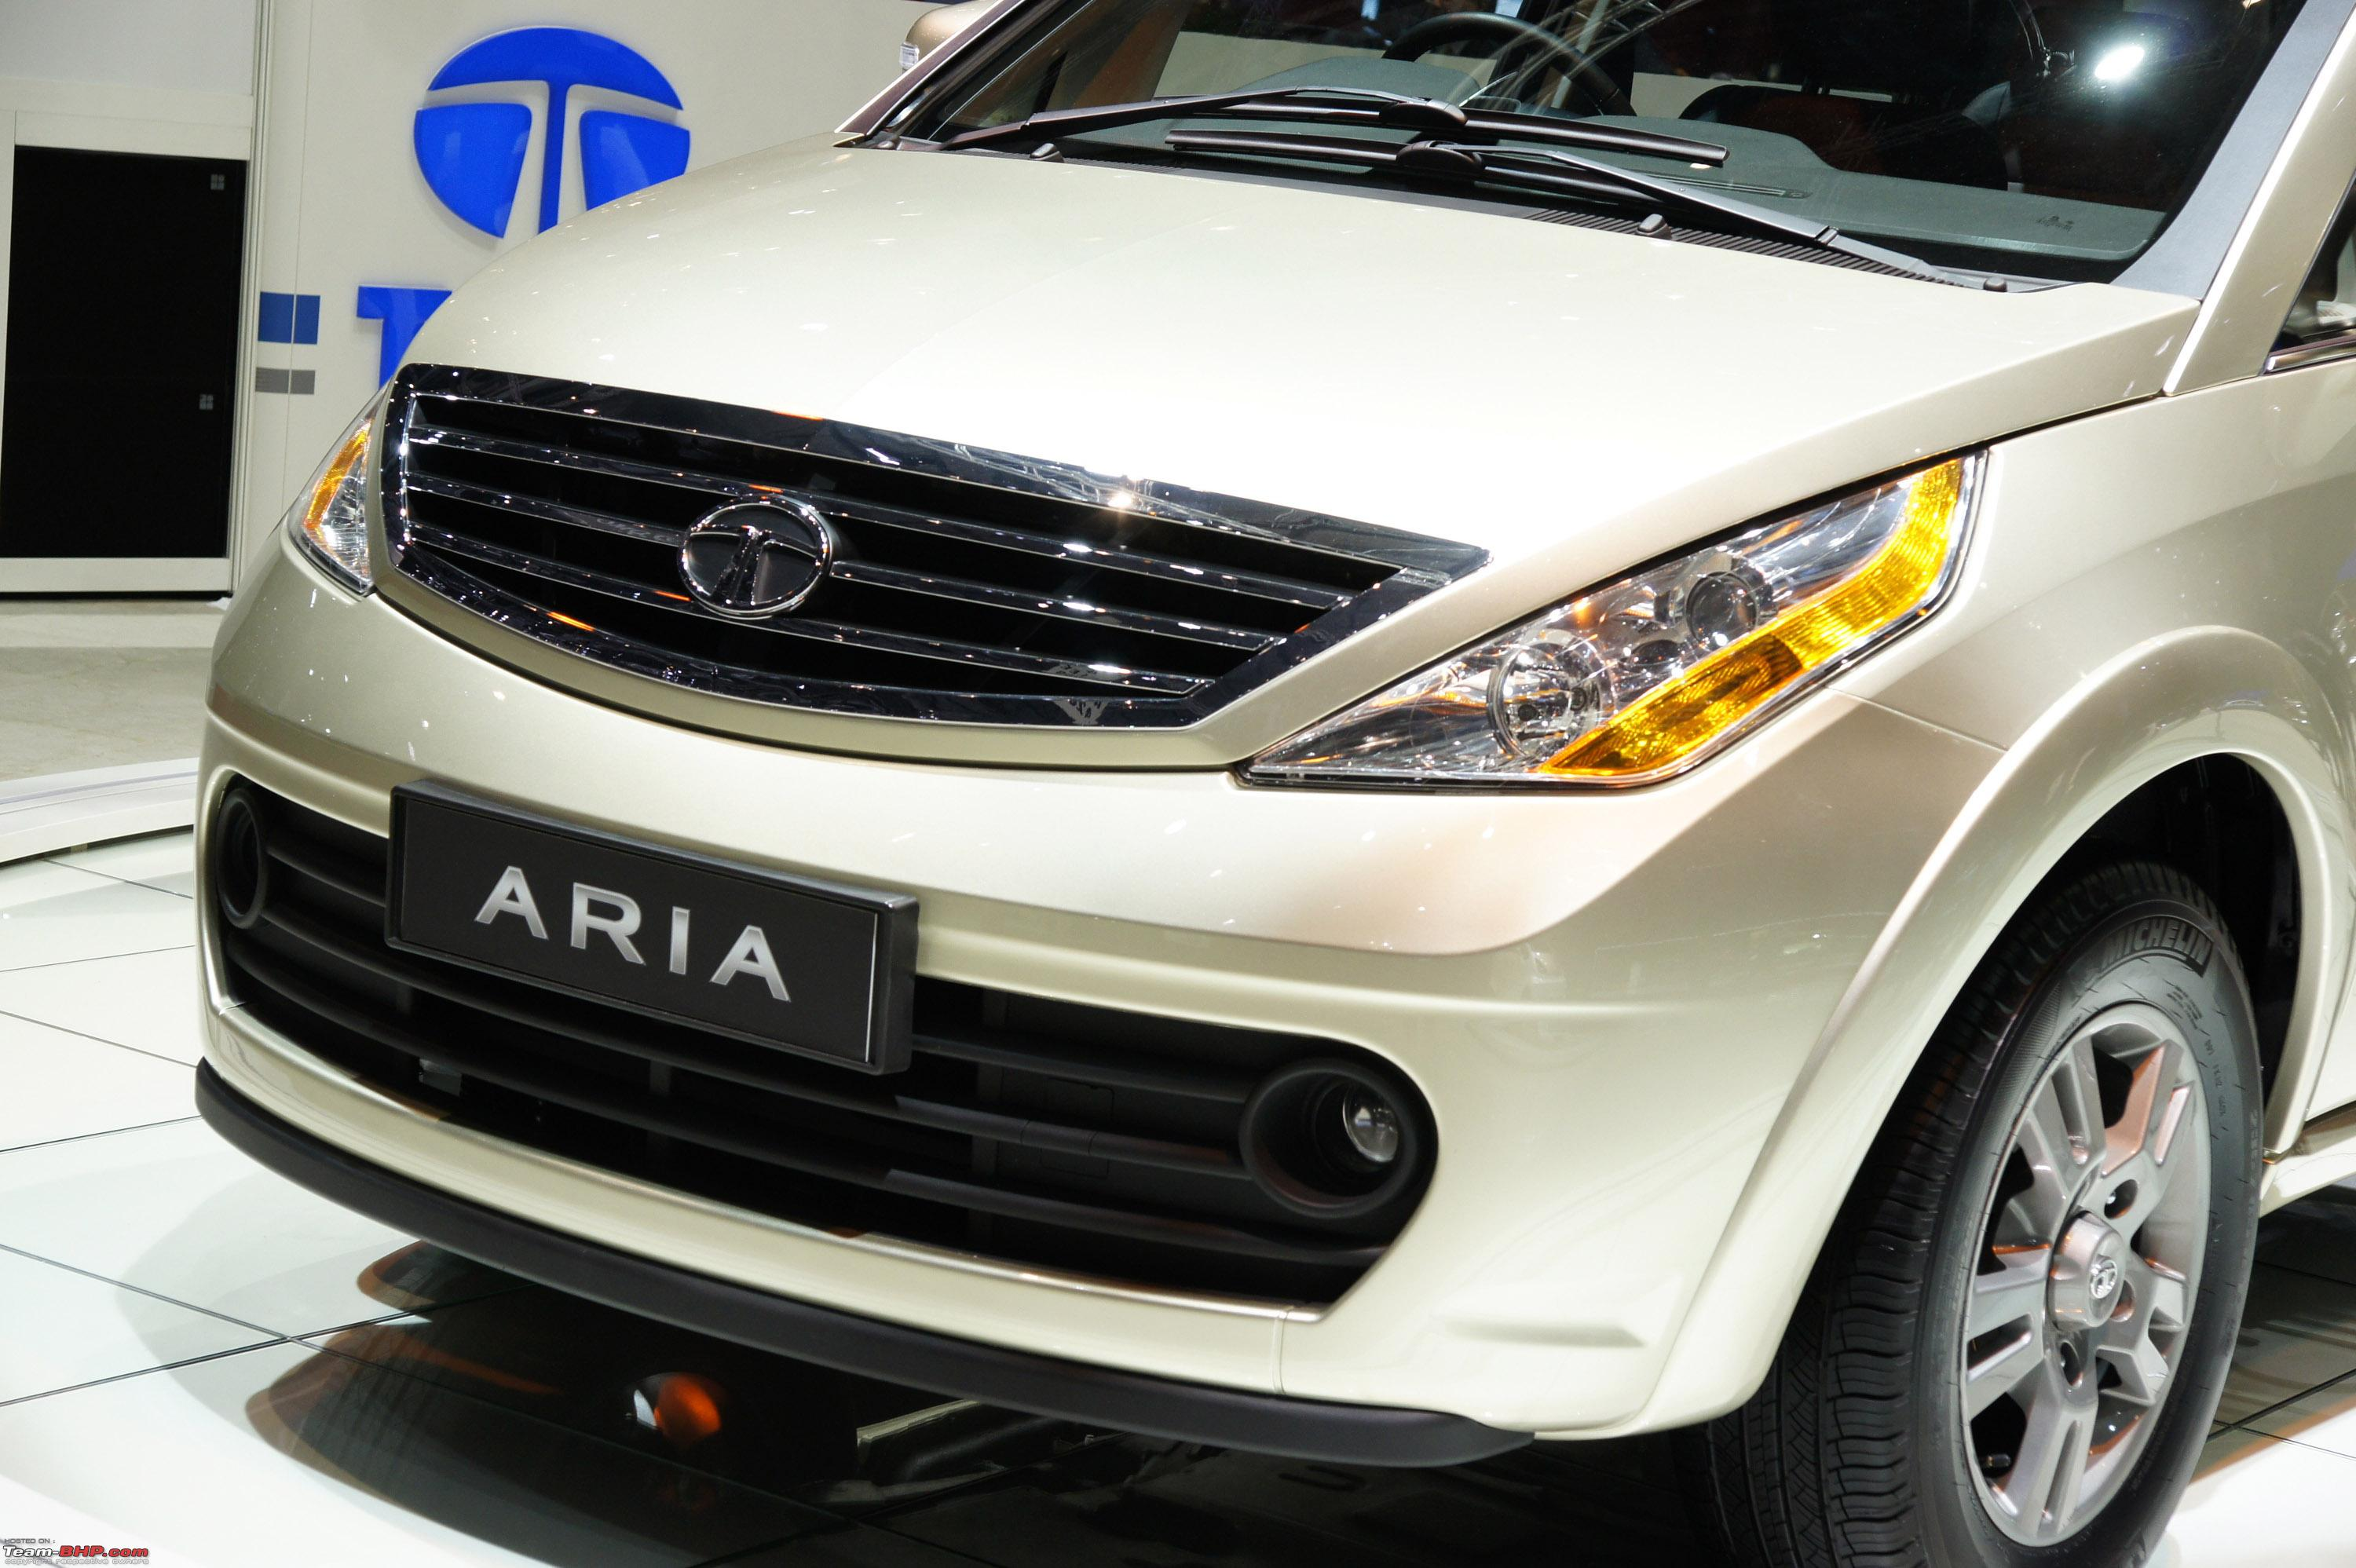 TATA Aria Pride 4X4 - Heart over Mind or Mind in the Right ...